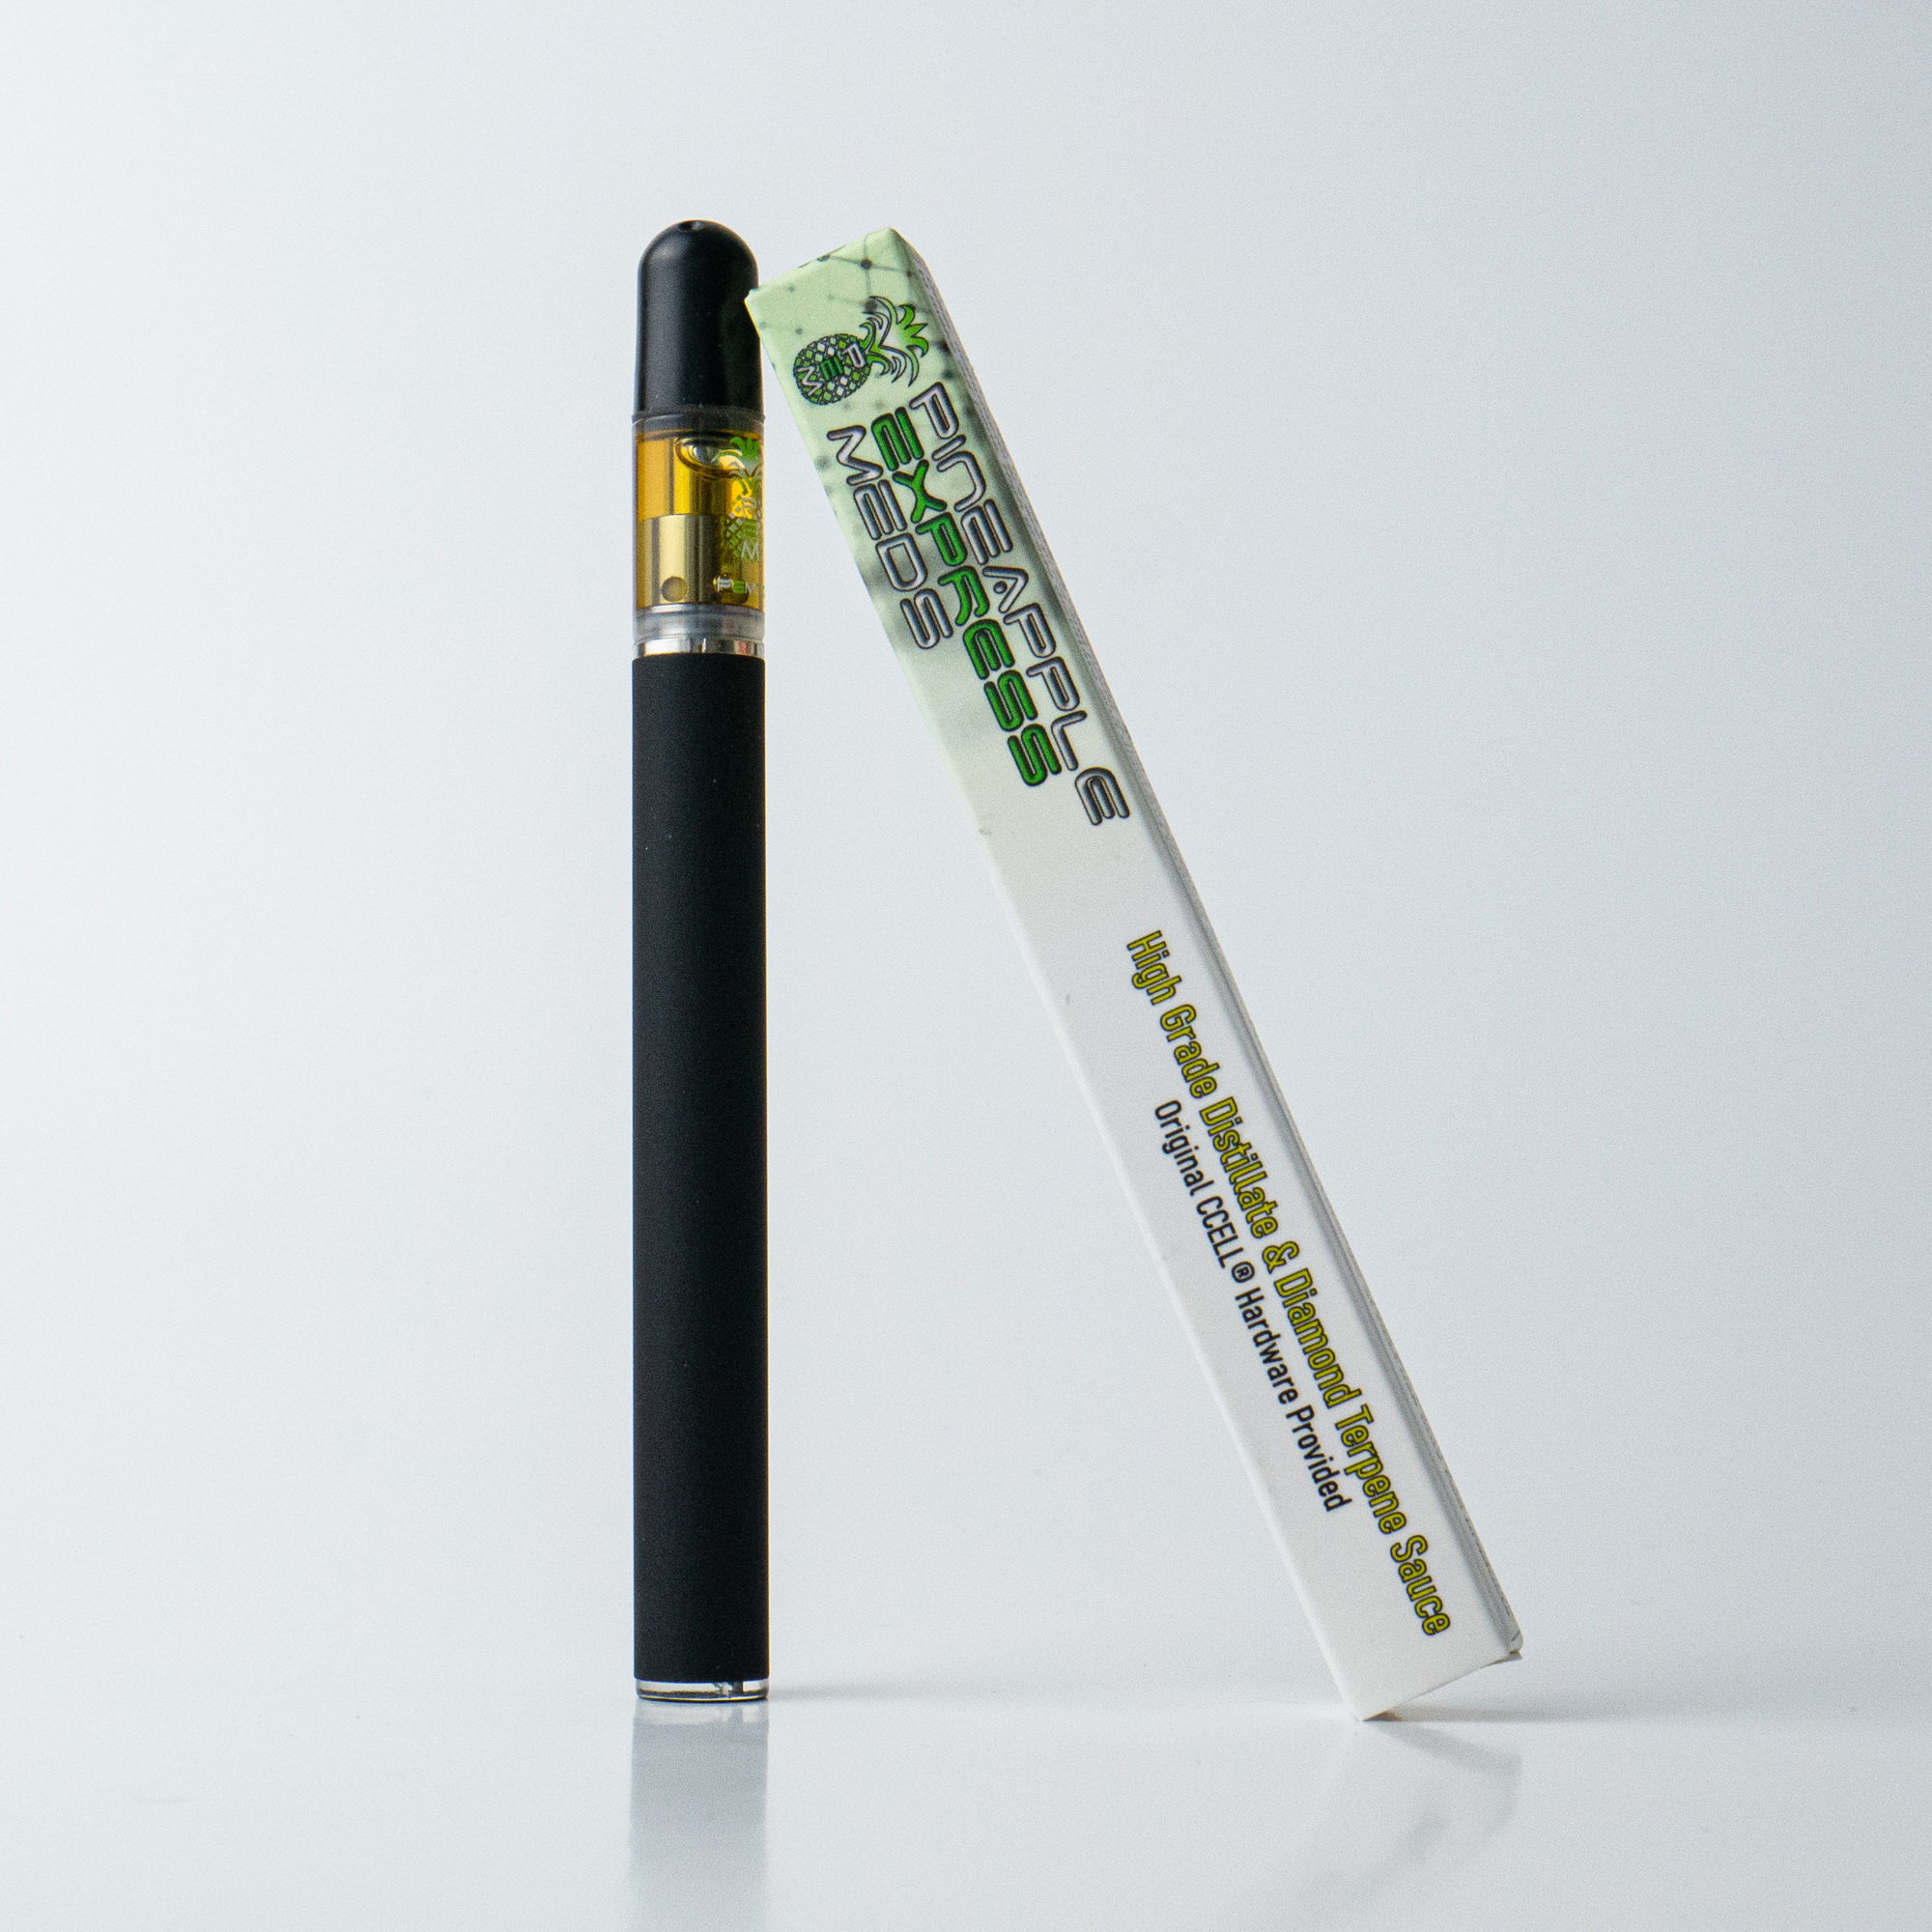 Pineapple Express Meds Disposable Vape